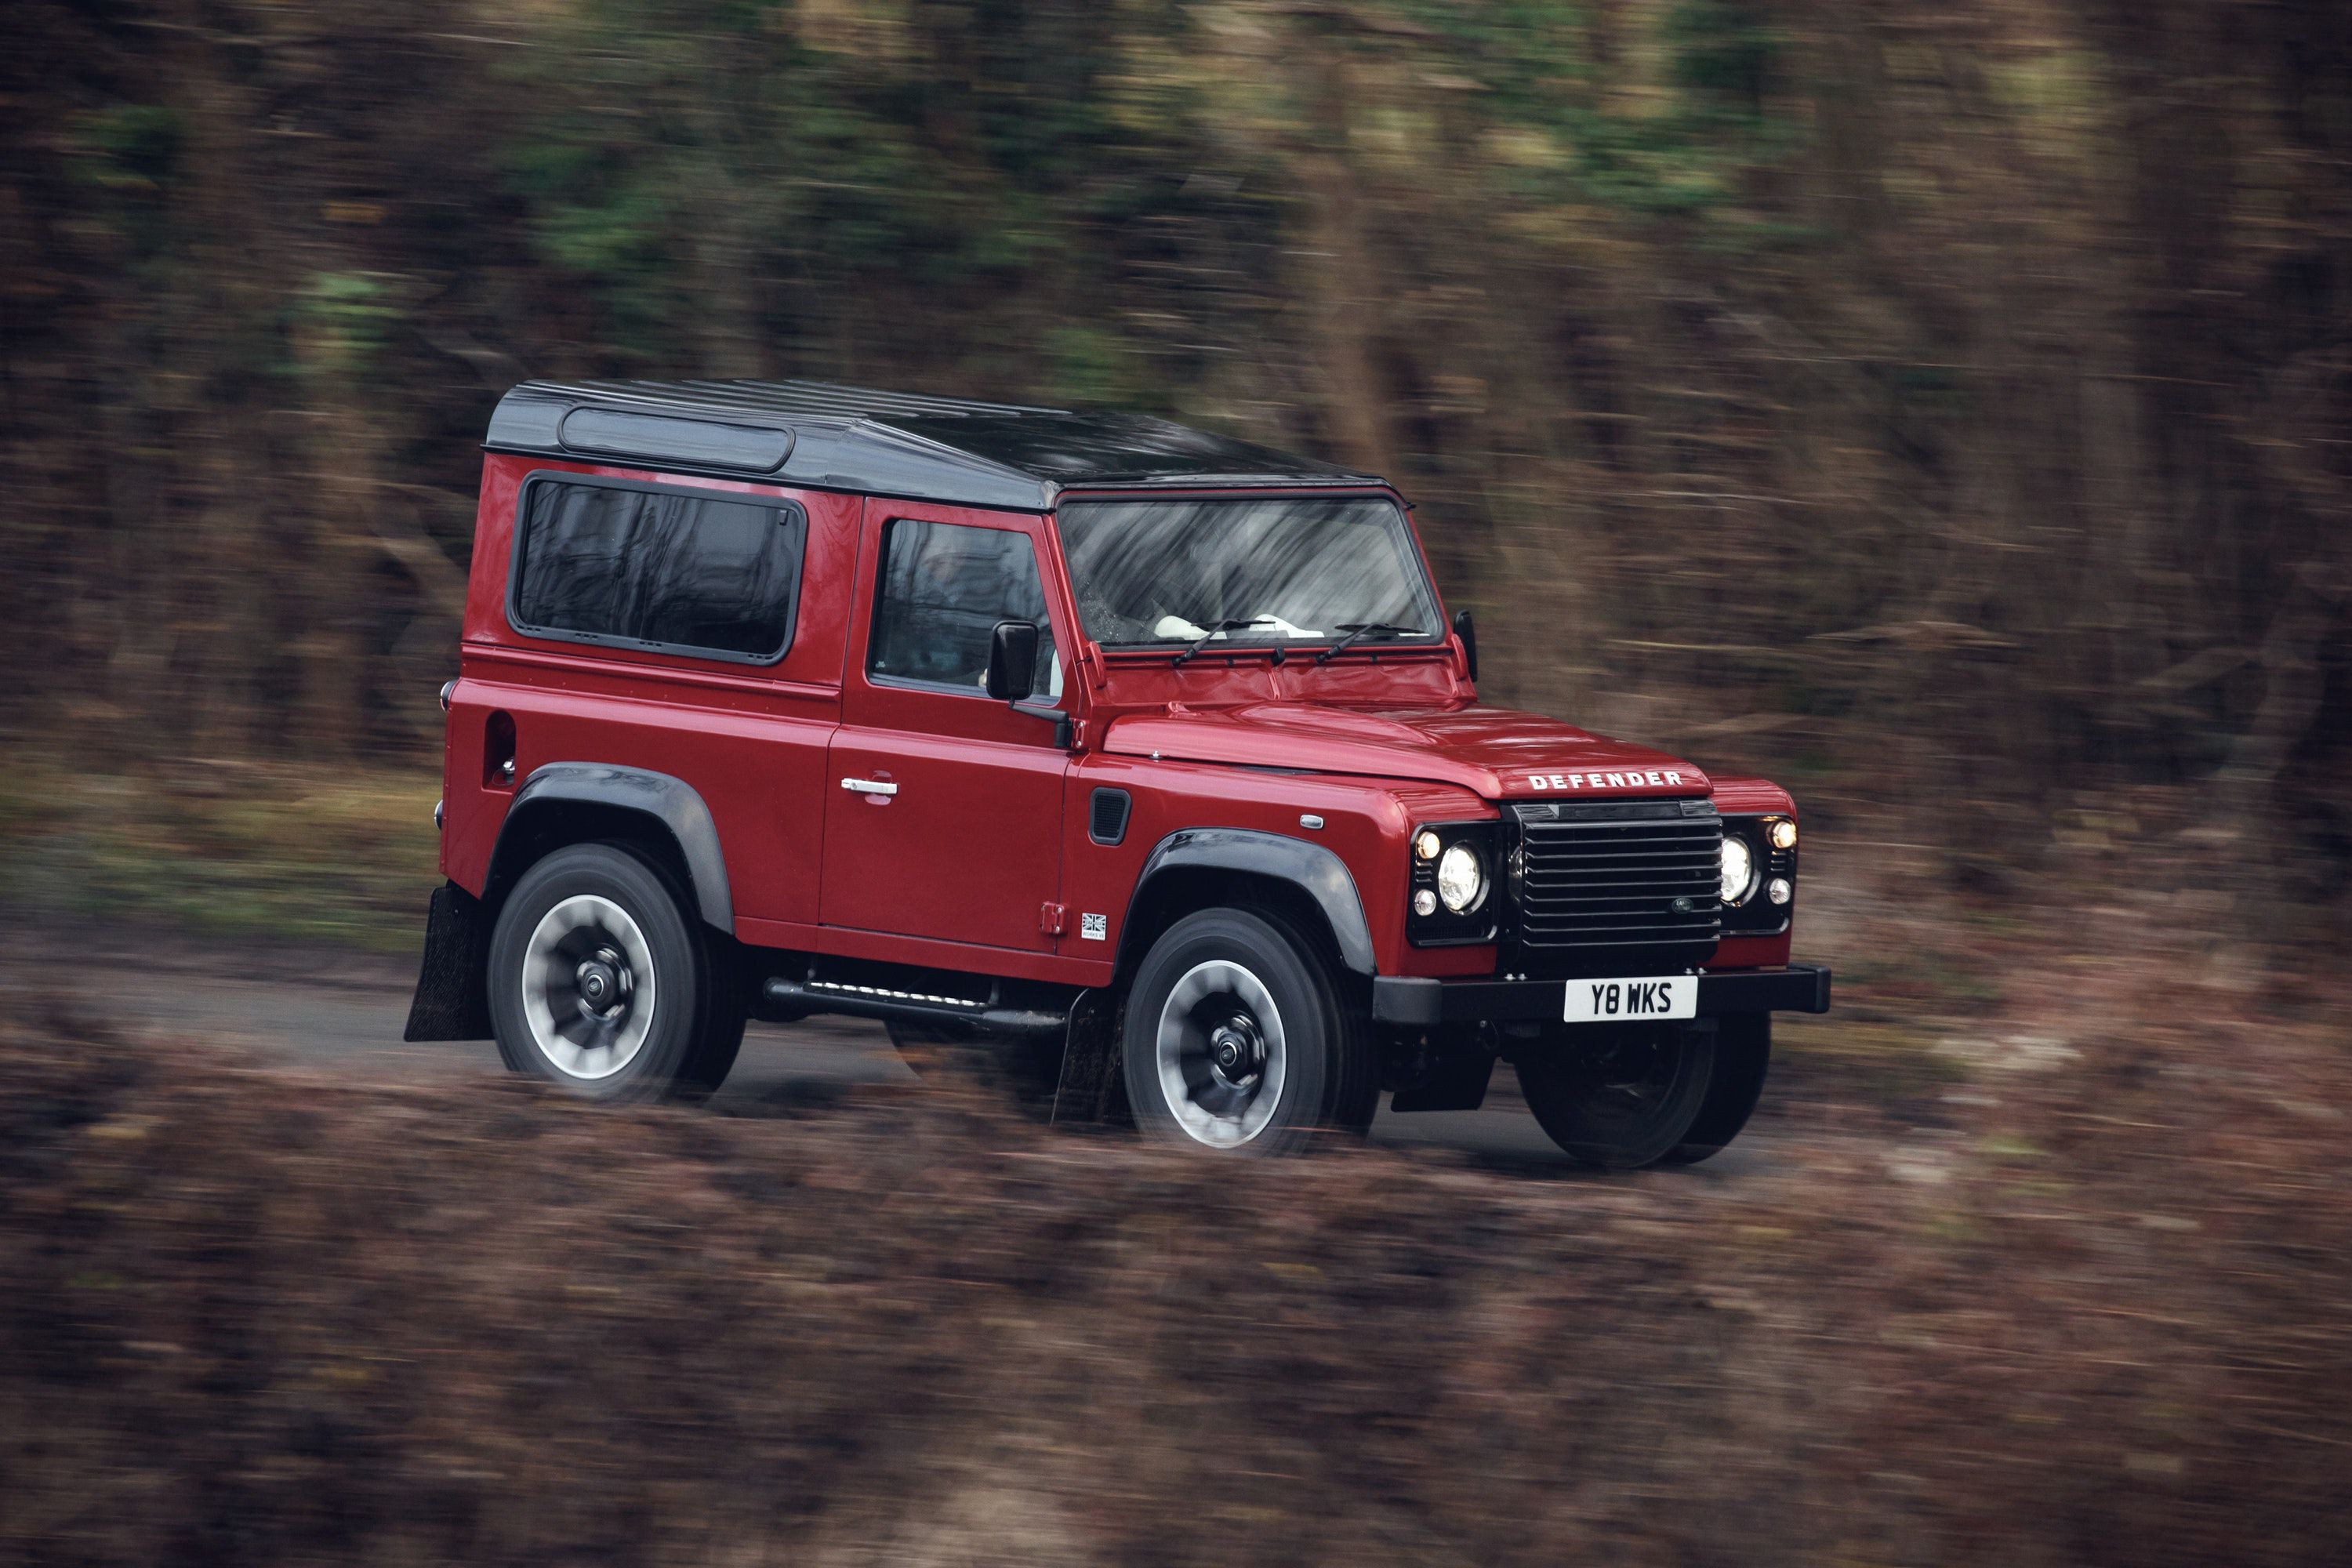 Land rover Defender driving through trees